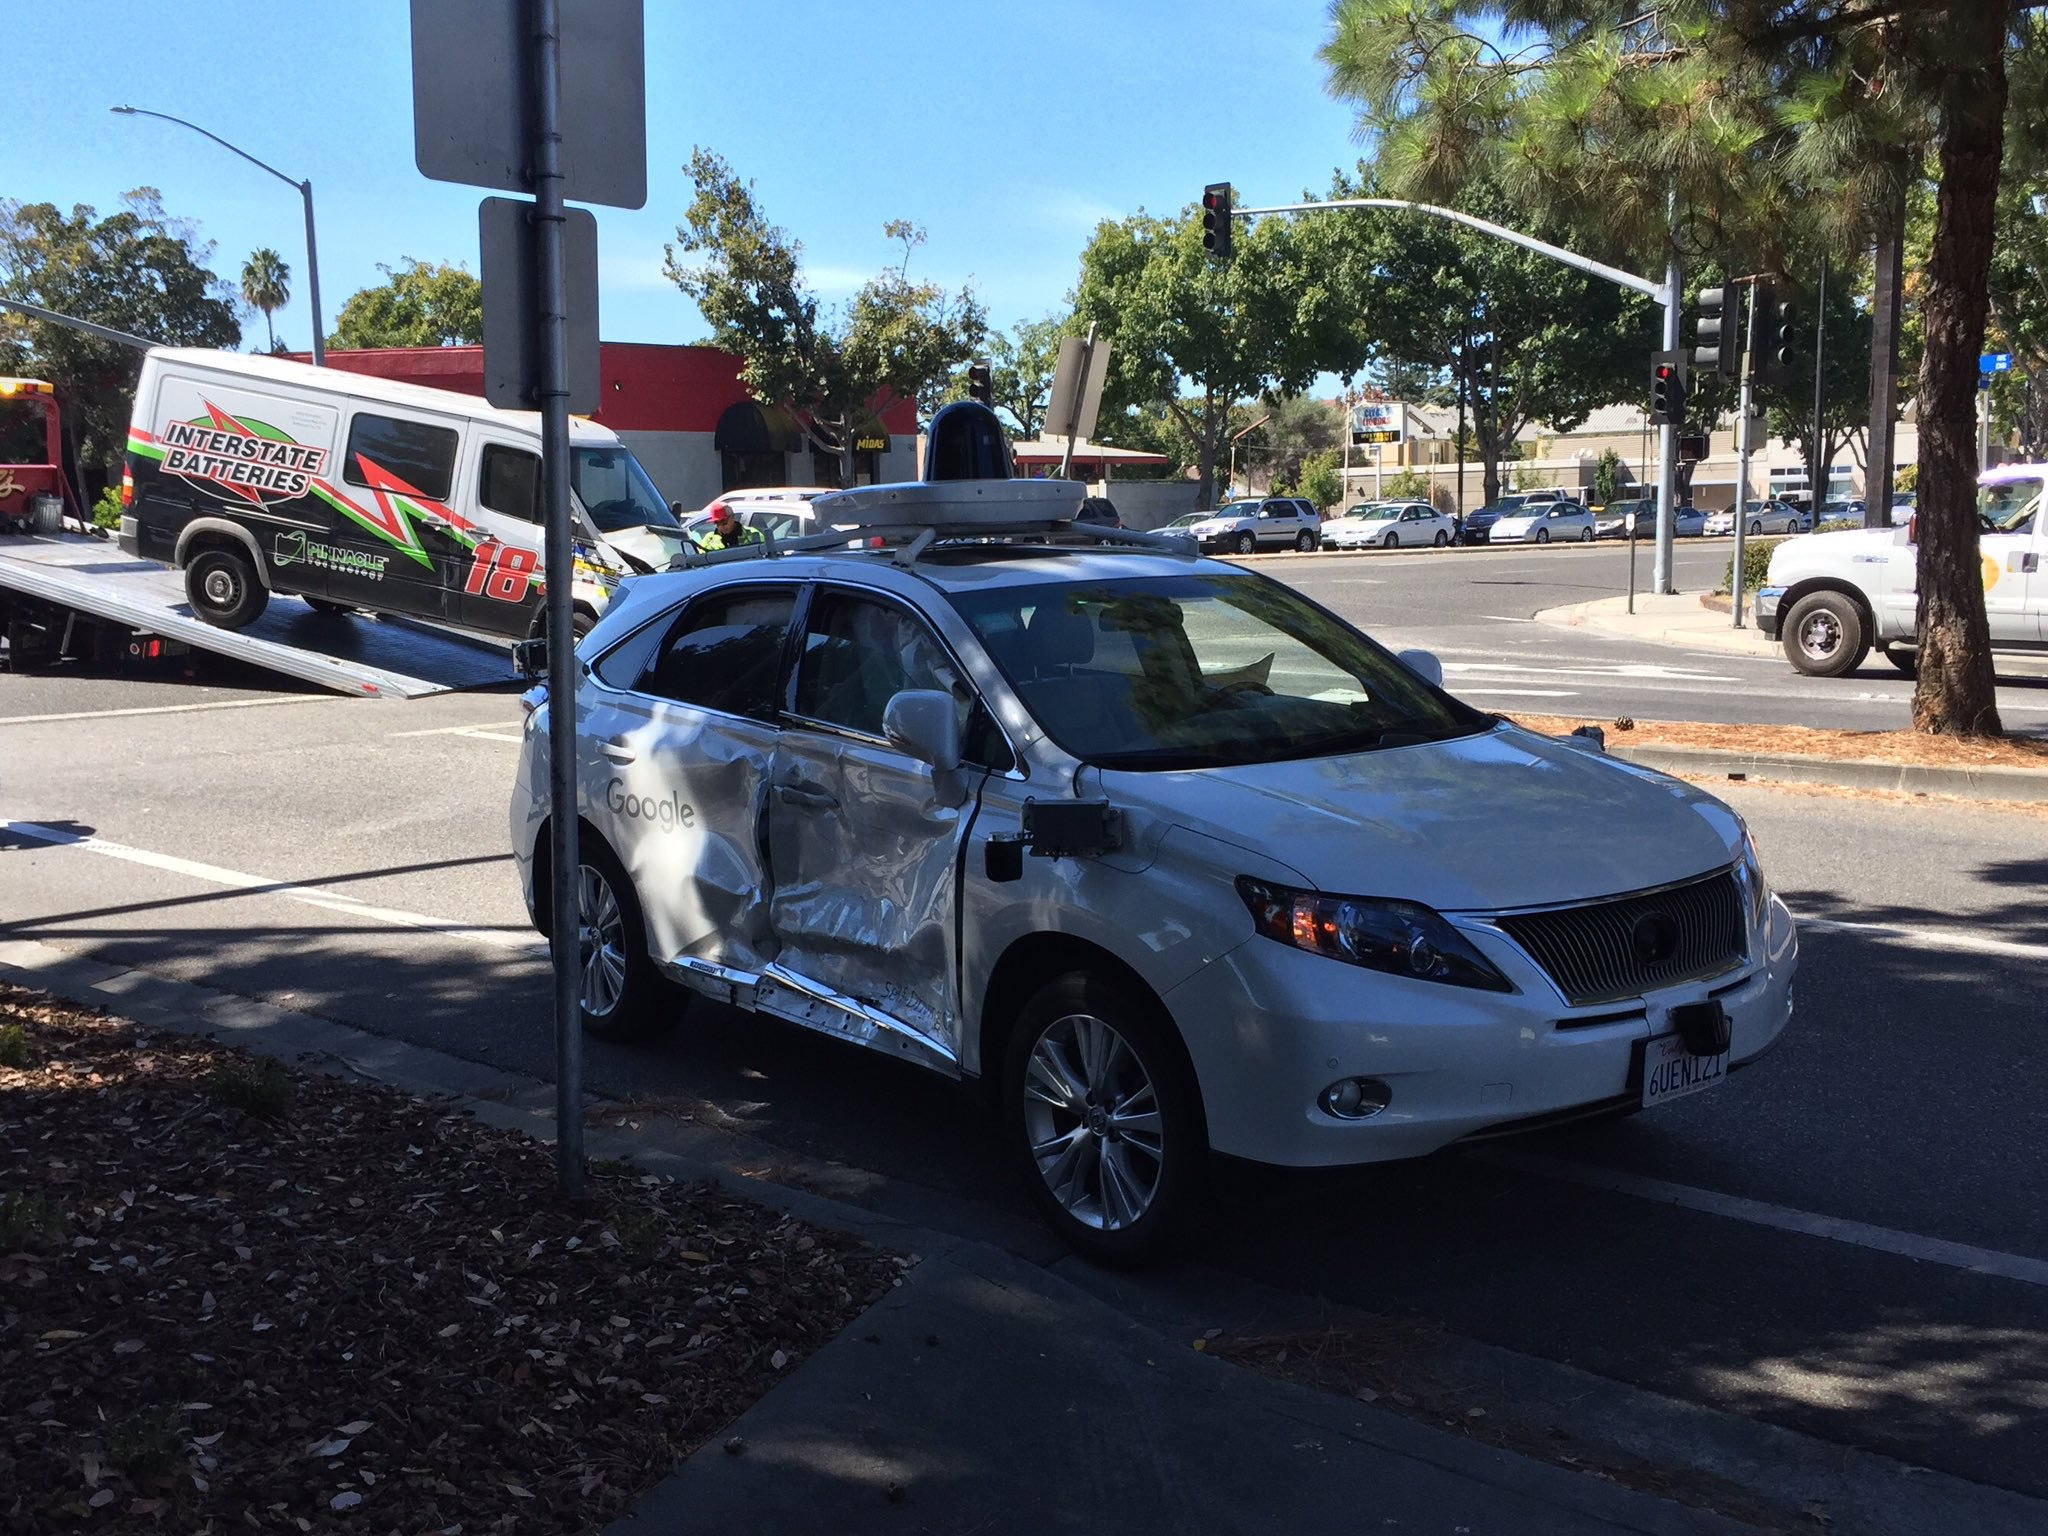 Driverless Cars not ready for roads